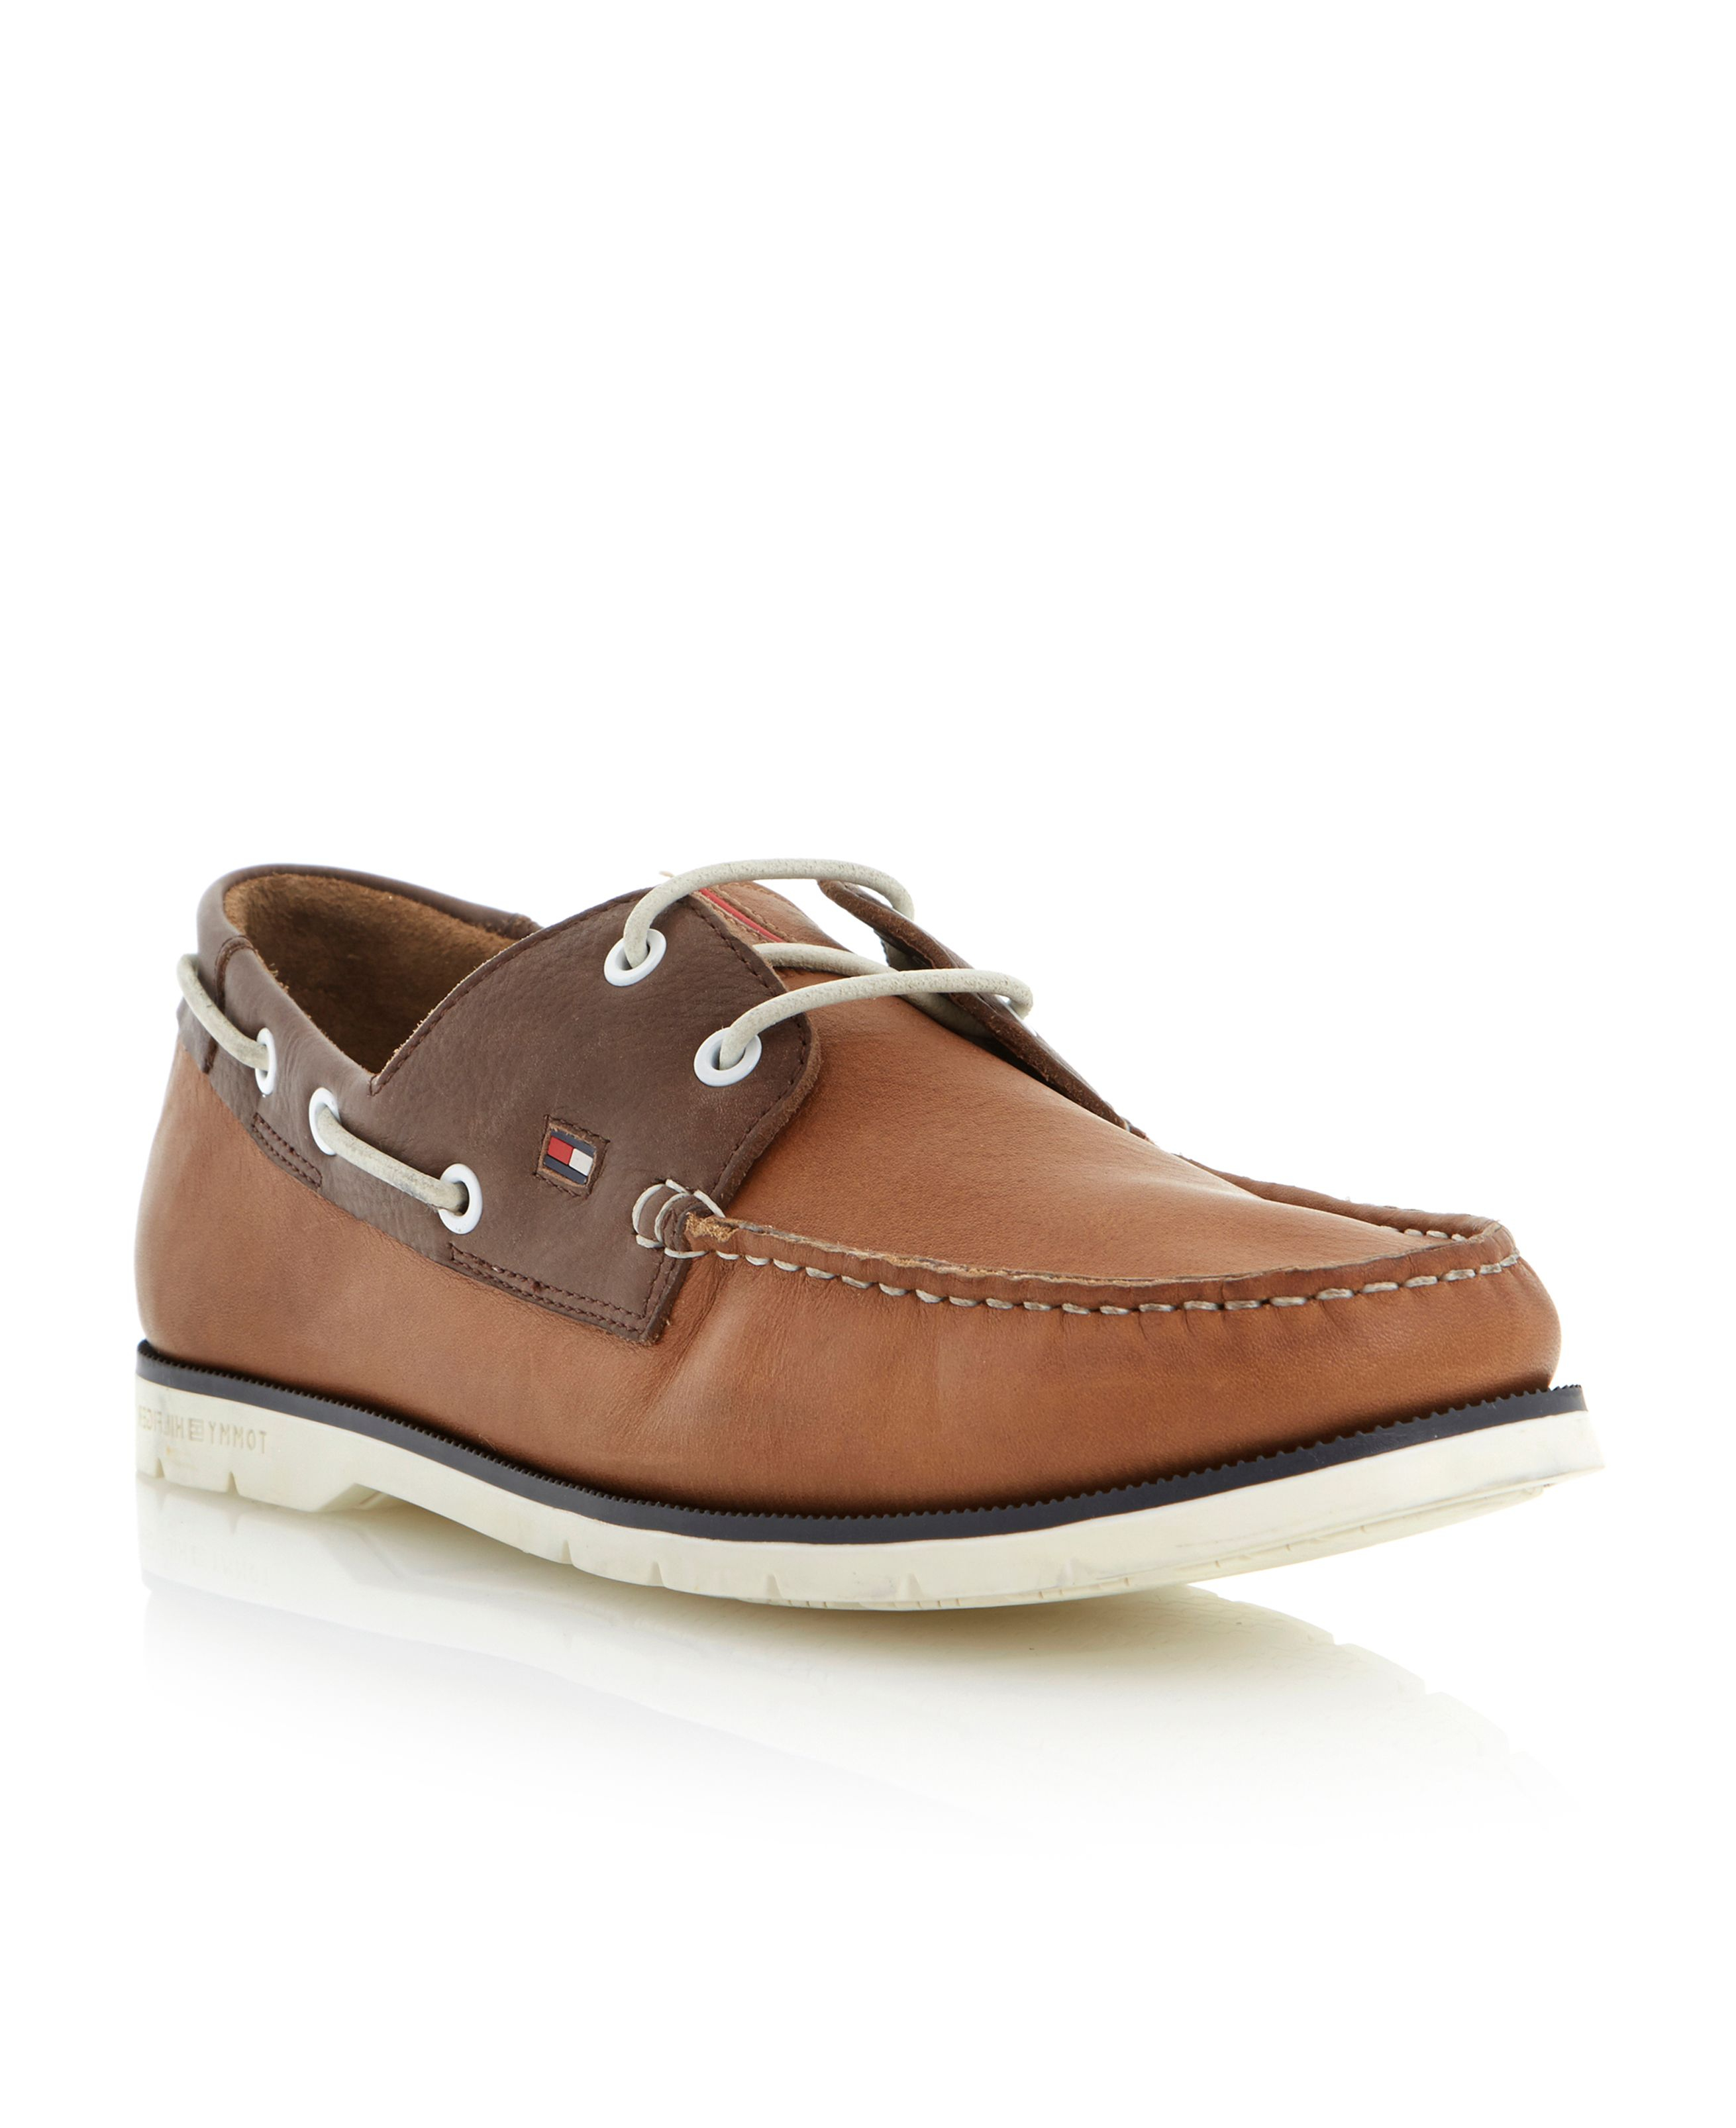 Tommy hilfiger Cain 3a Contrast Facing Lace Up Boat Shoes in Brown ...